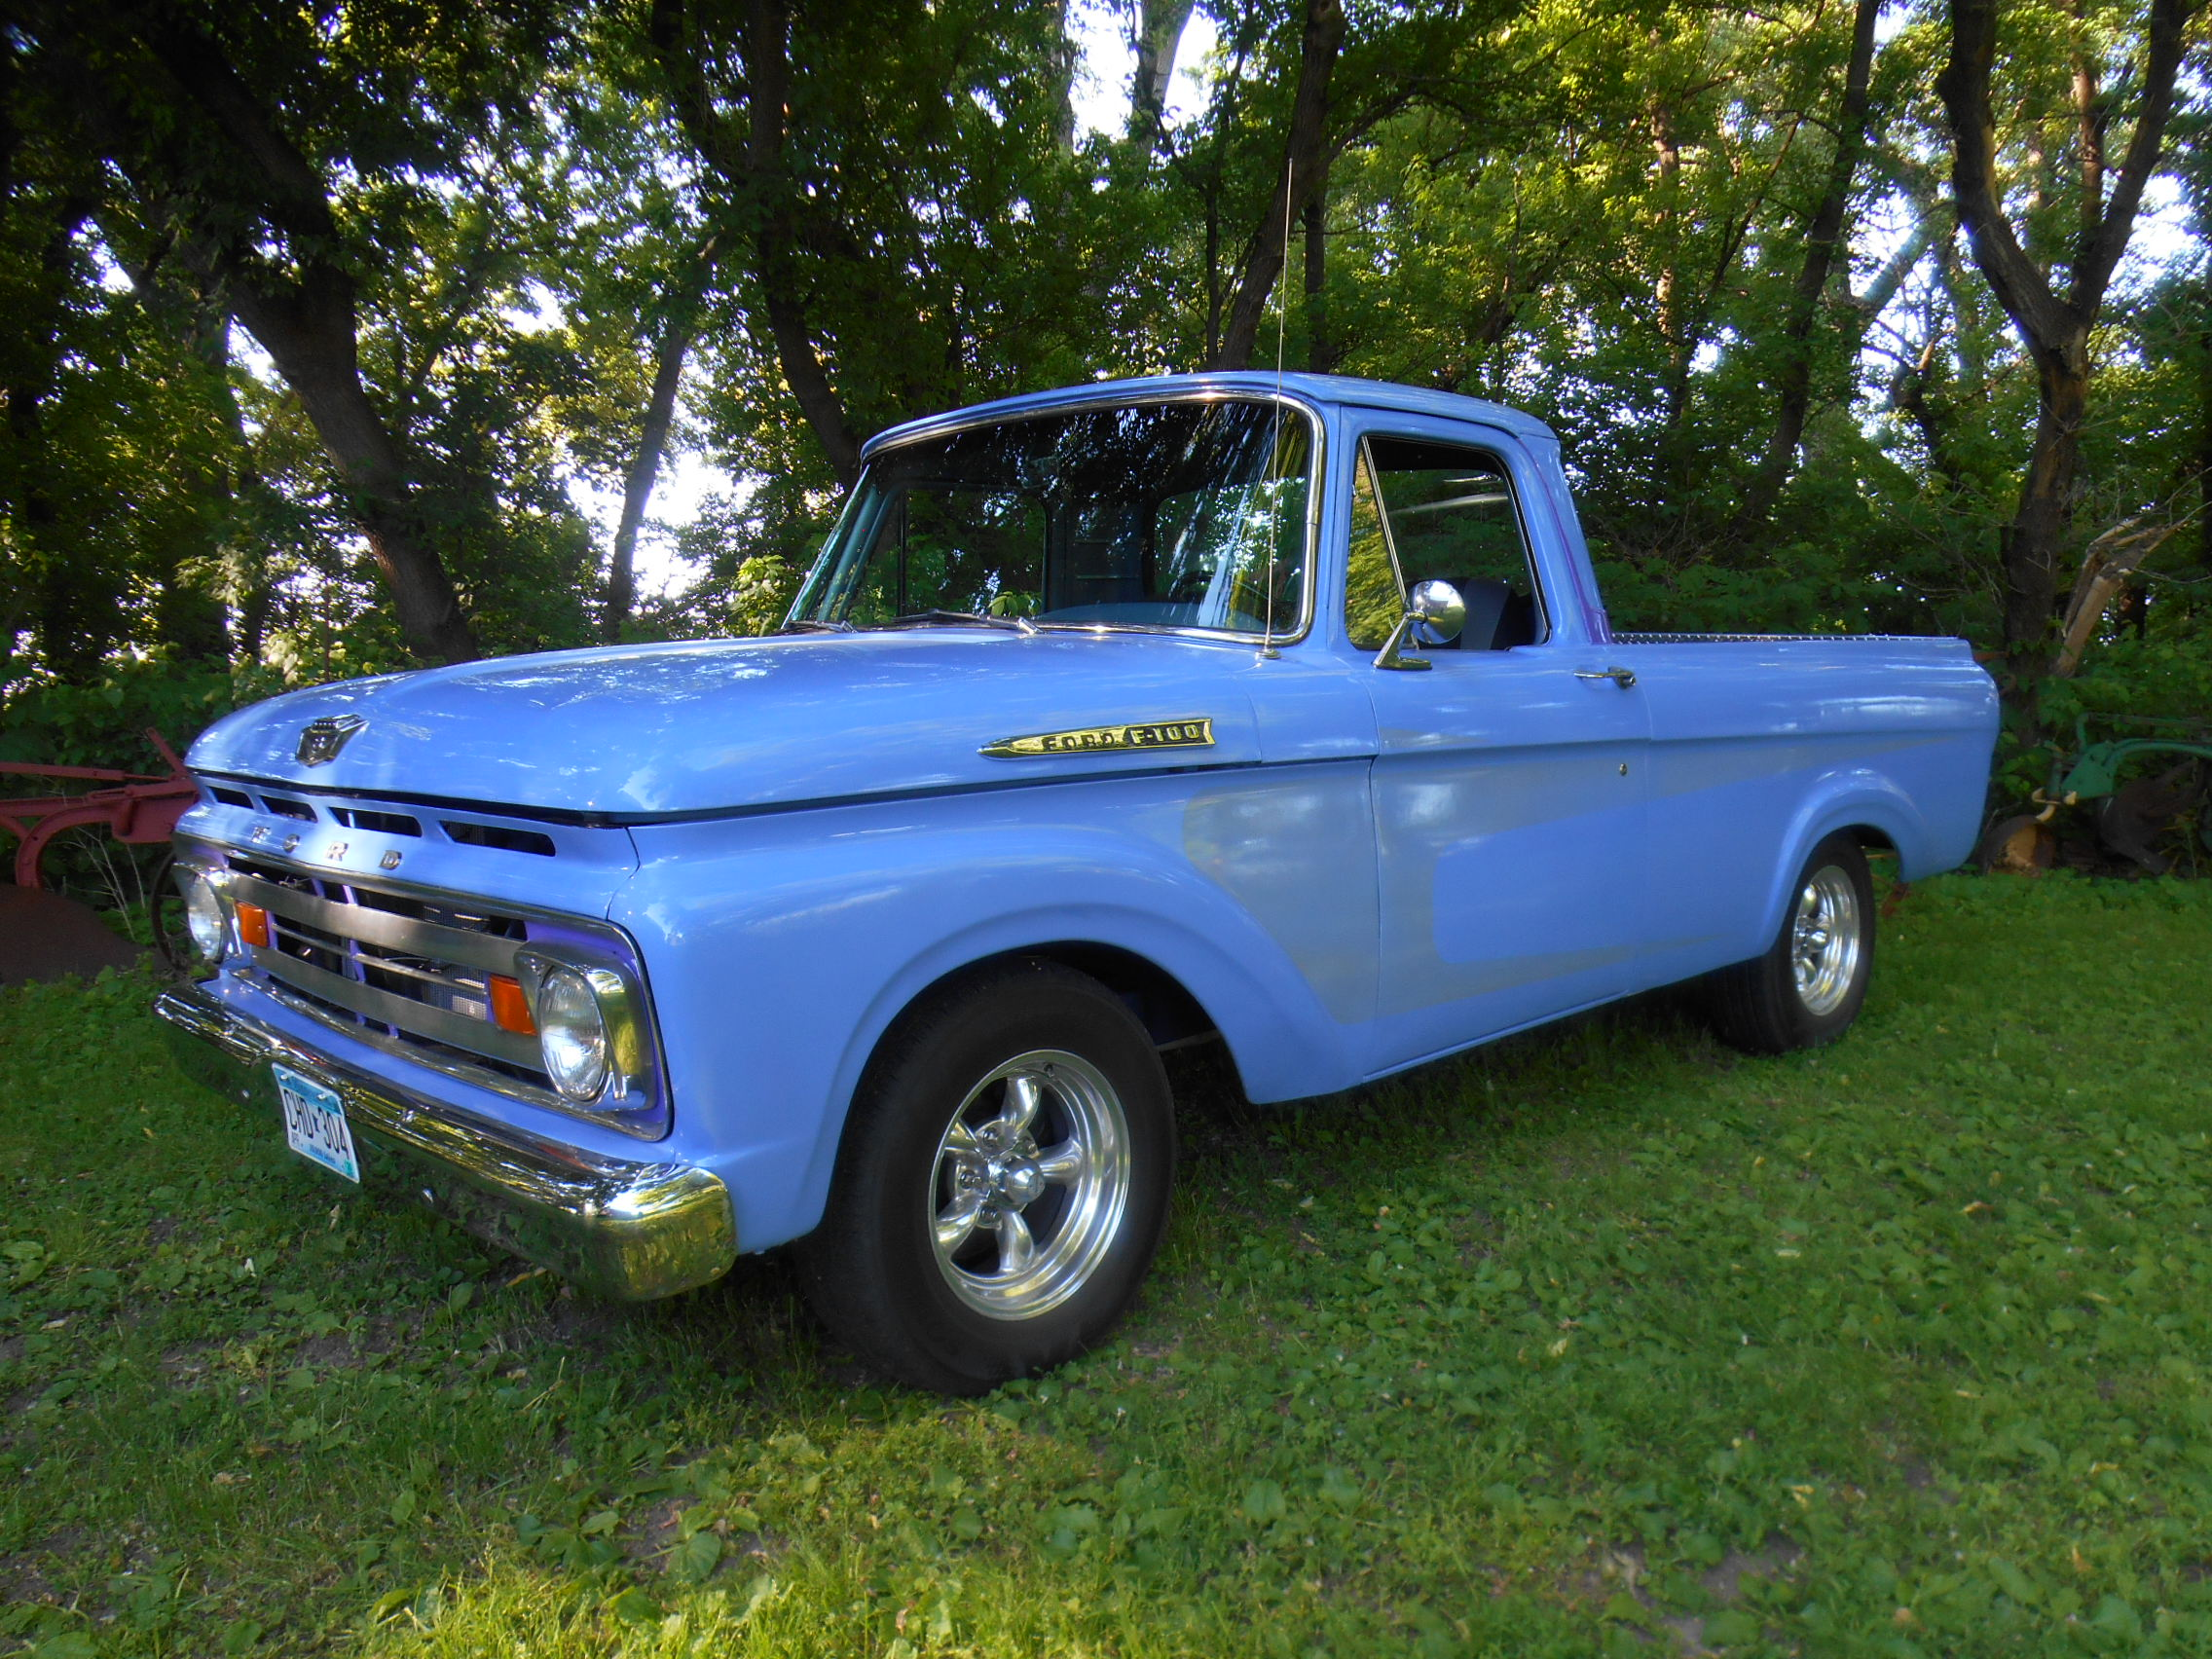 98 chevy 2500 and 62 ford f-100 for sale 015.jpg